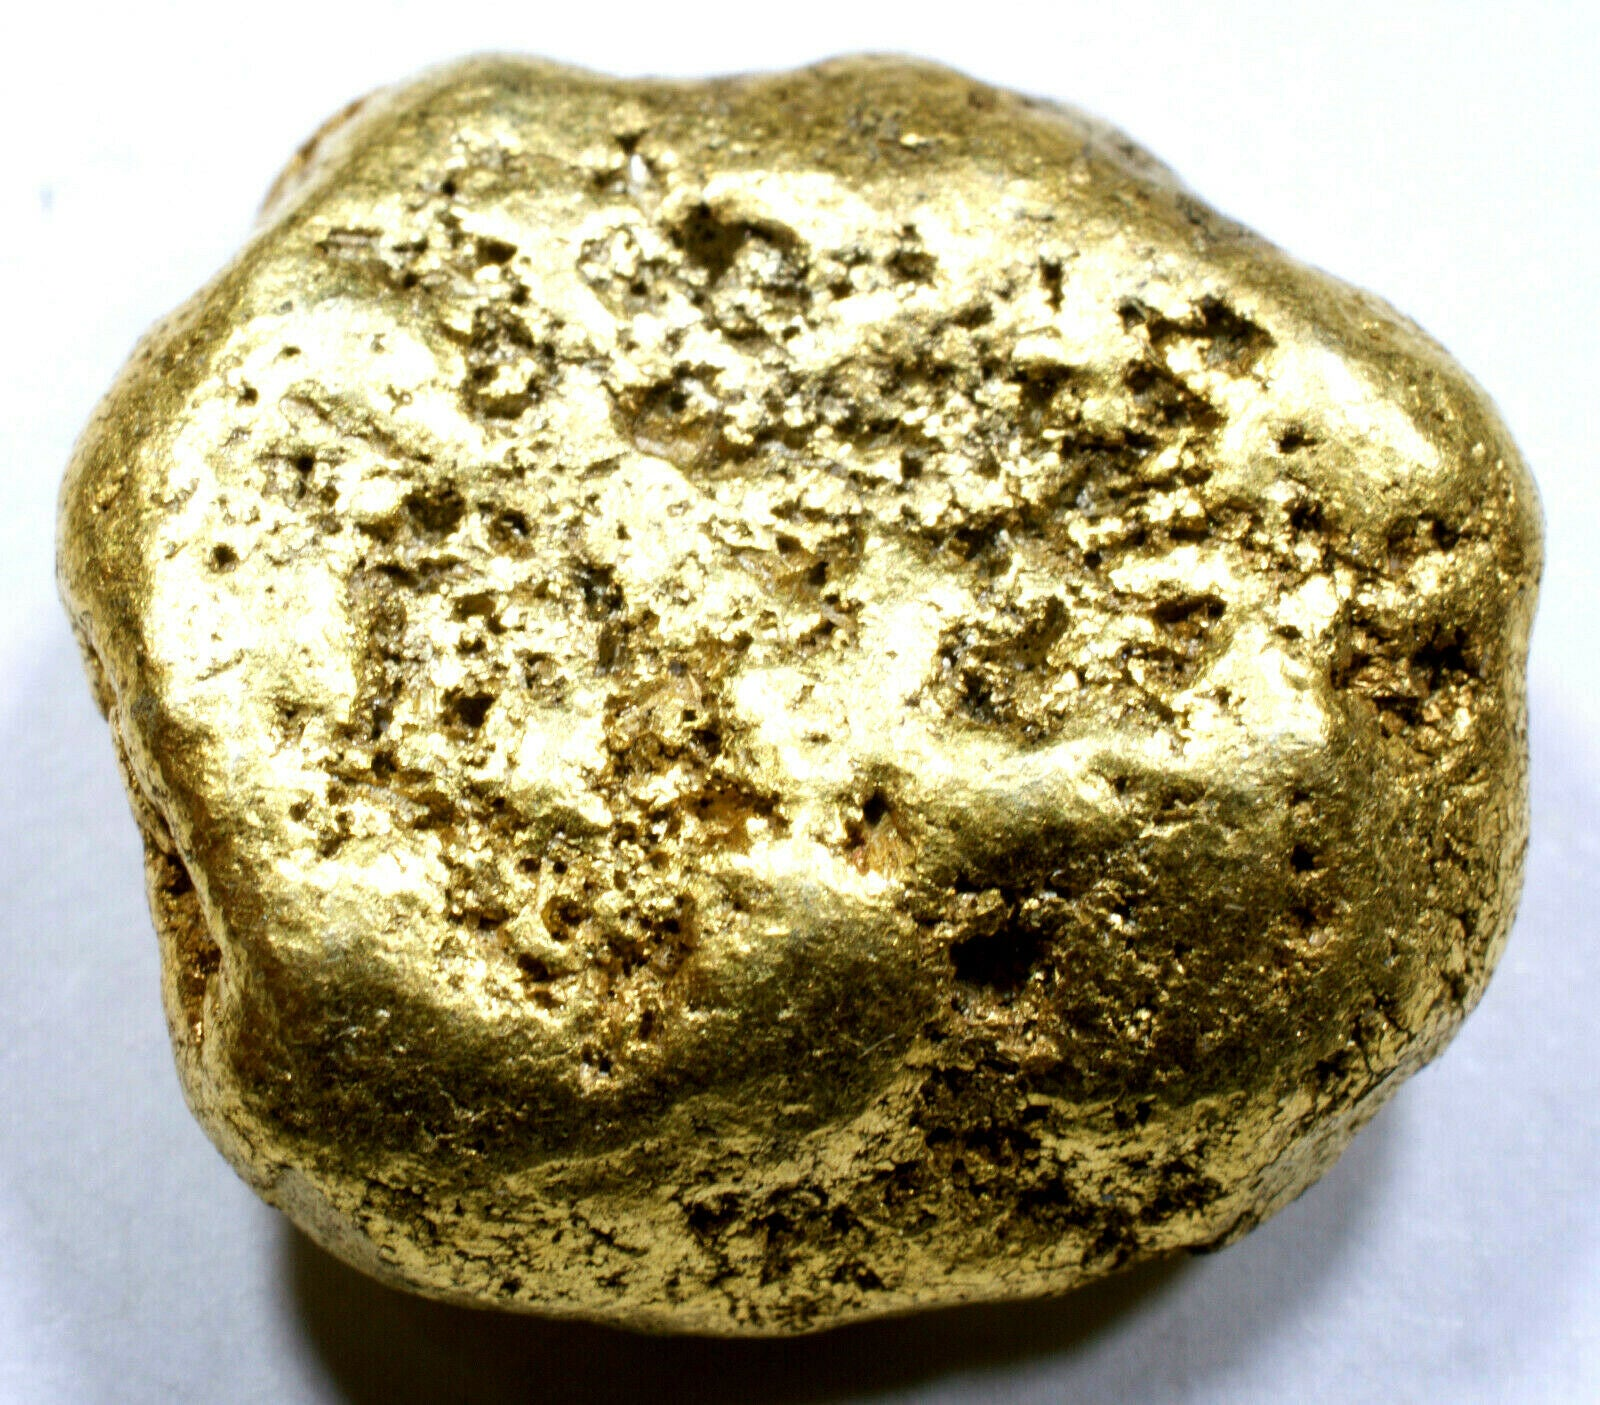 10.176 GRAMS ALASKAN NATURAL PURE GOLD NUGGET GENUINE (#N210) - Liquidbullion